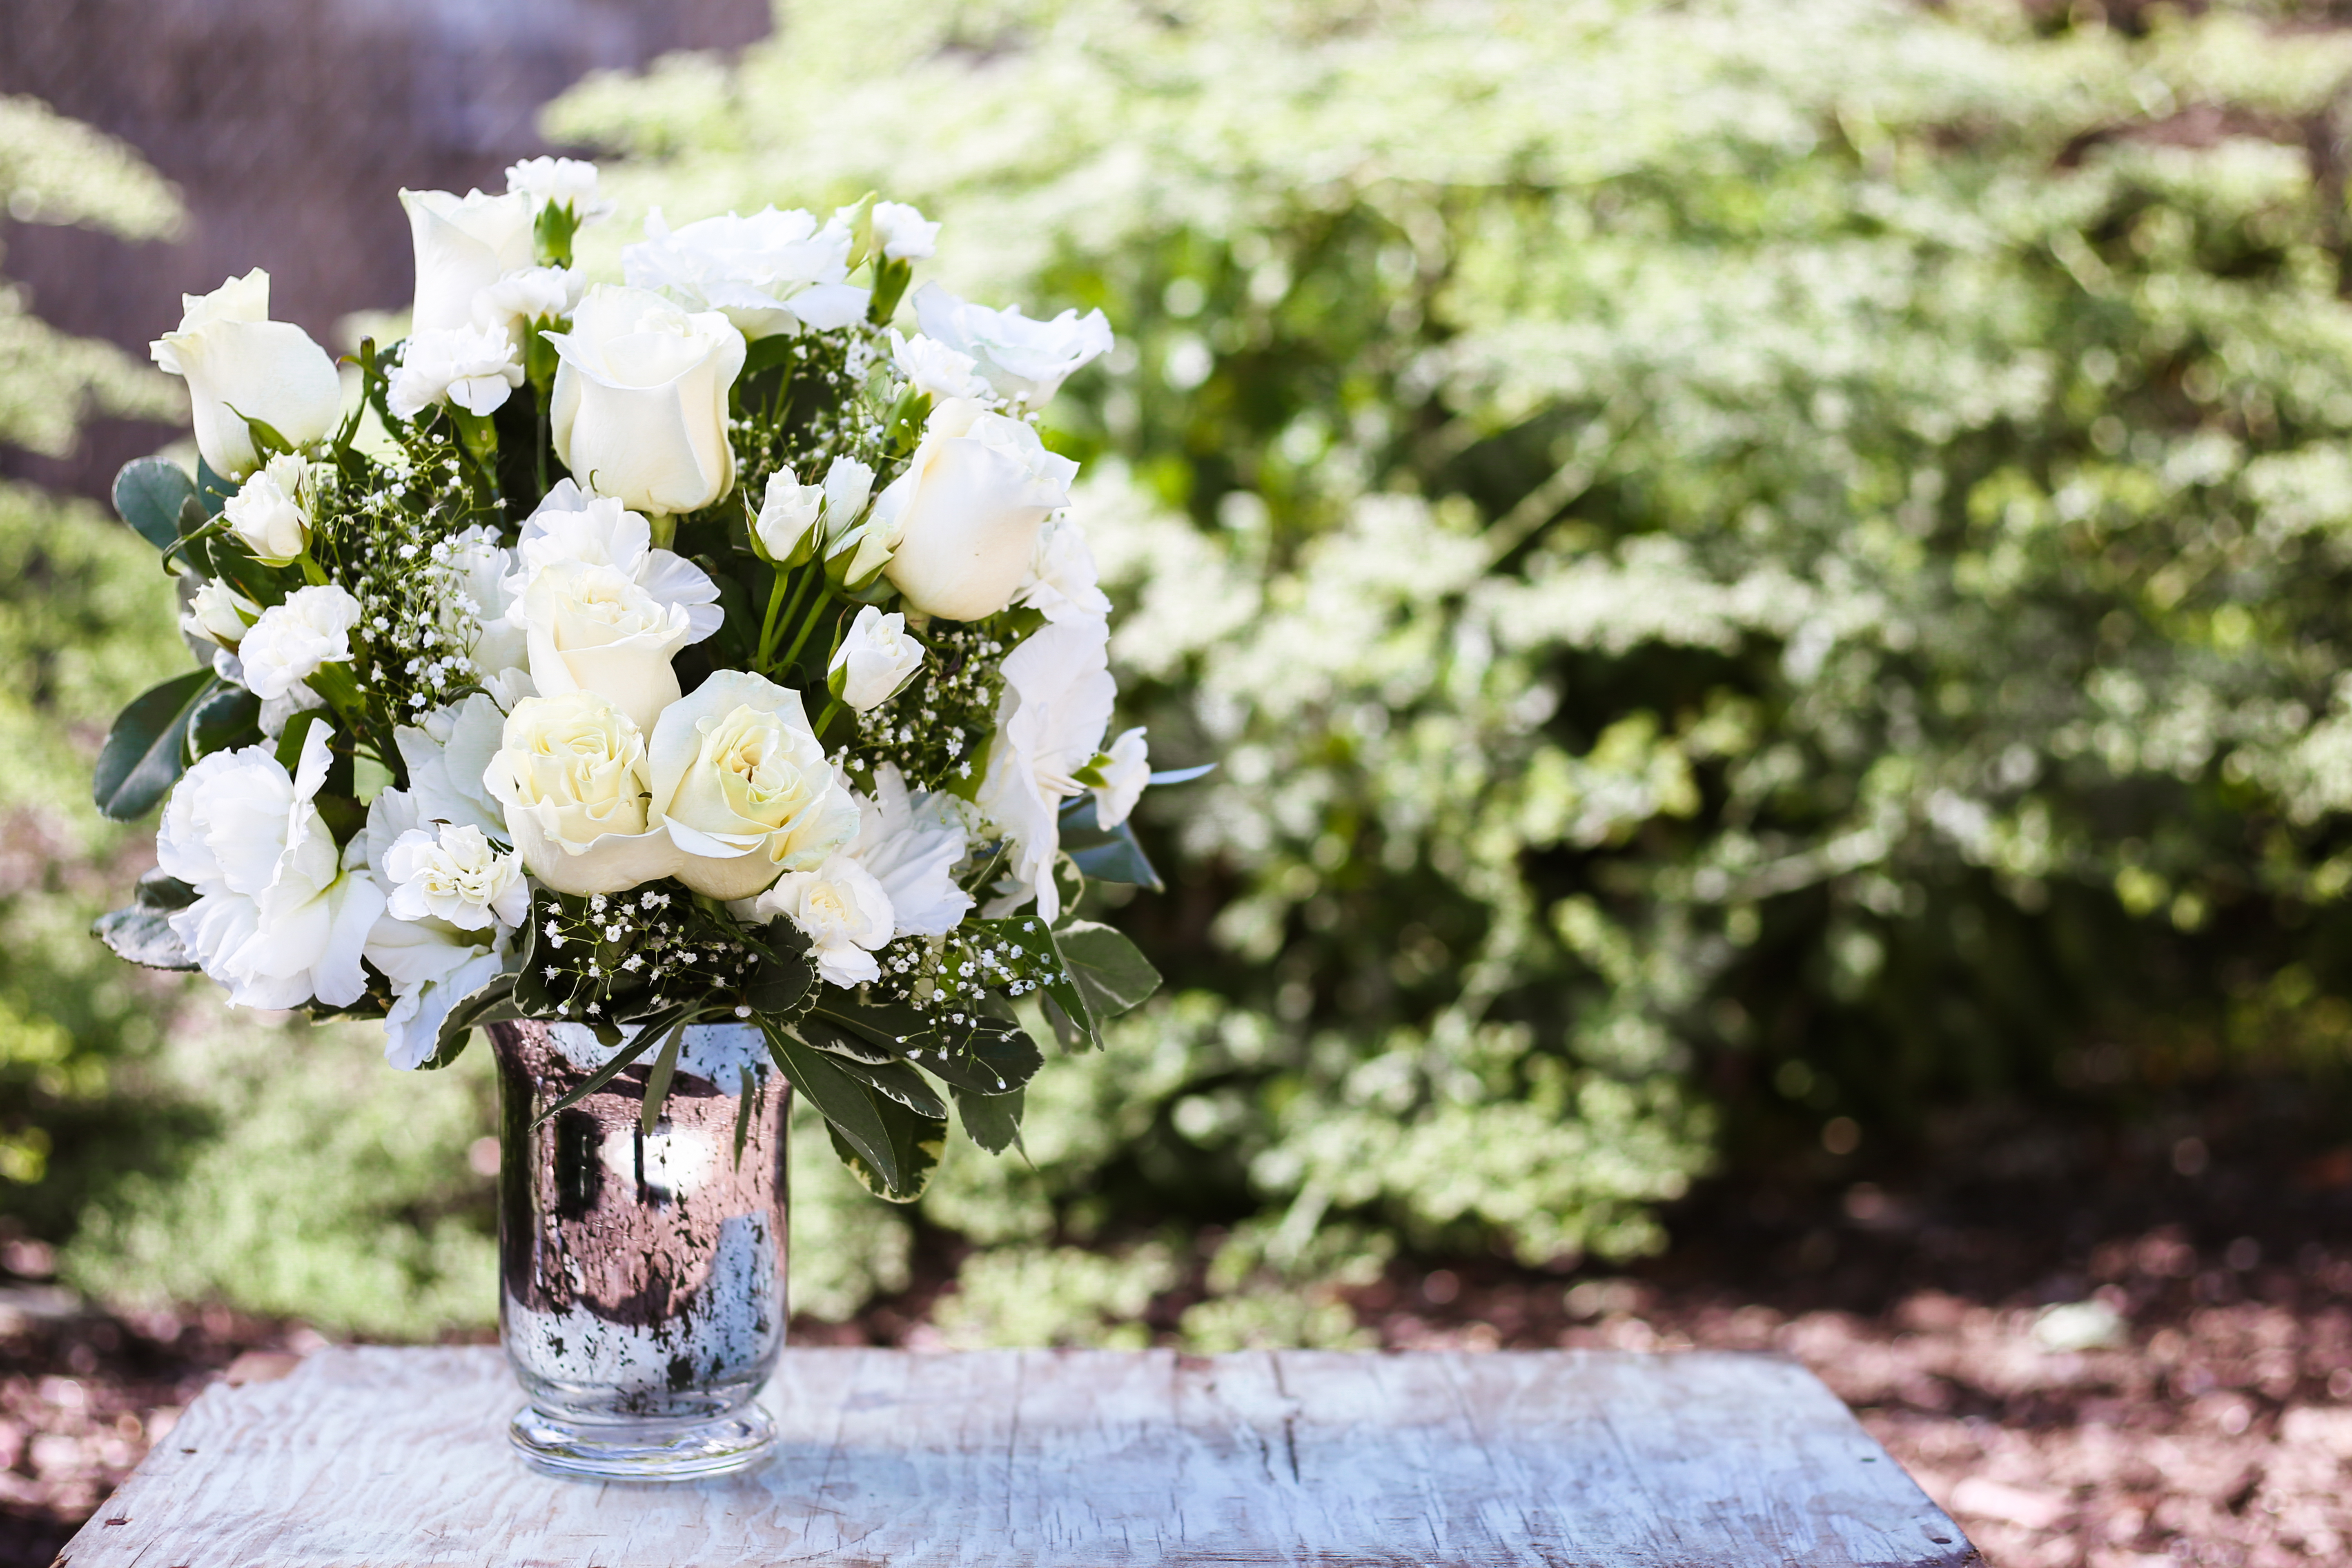 3 summer sympathy flowers to send loved ones